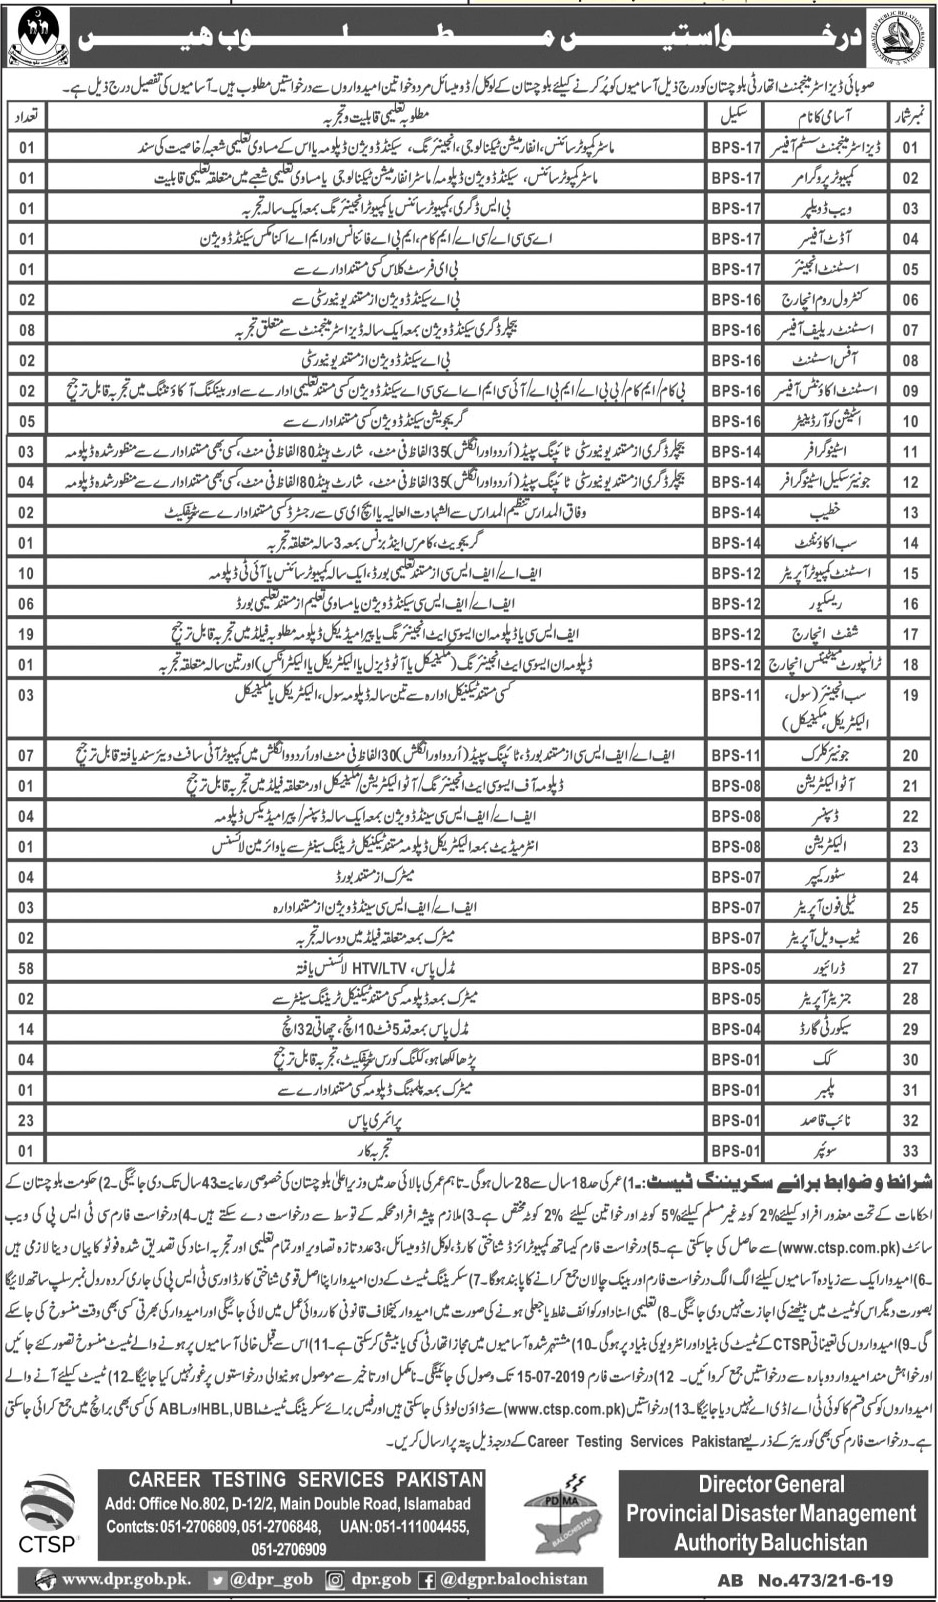 Provincial Disaster Management Authority Baluchistan PDMA Jobs CTSP Test Answer Keys Result